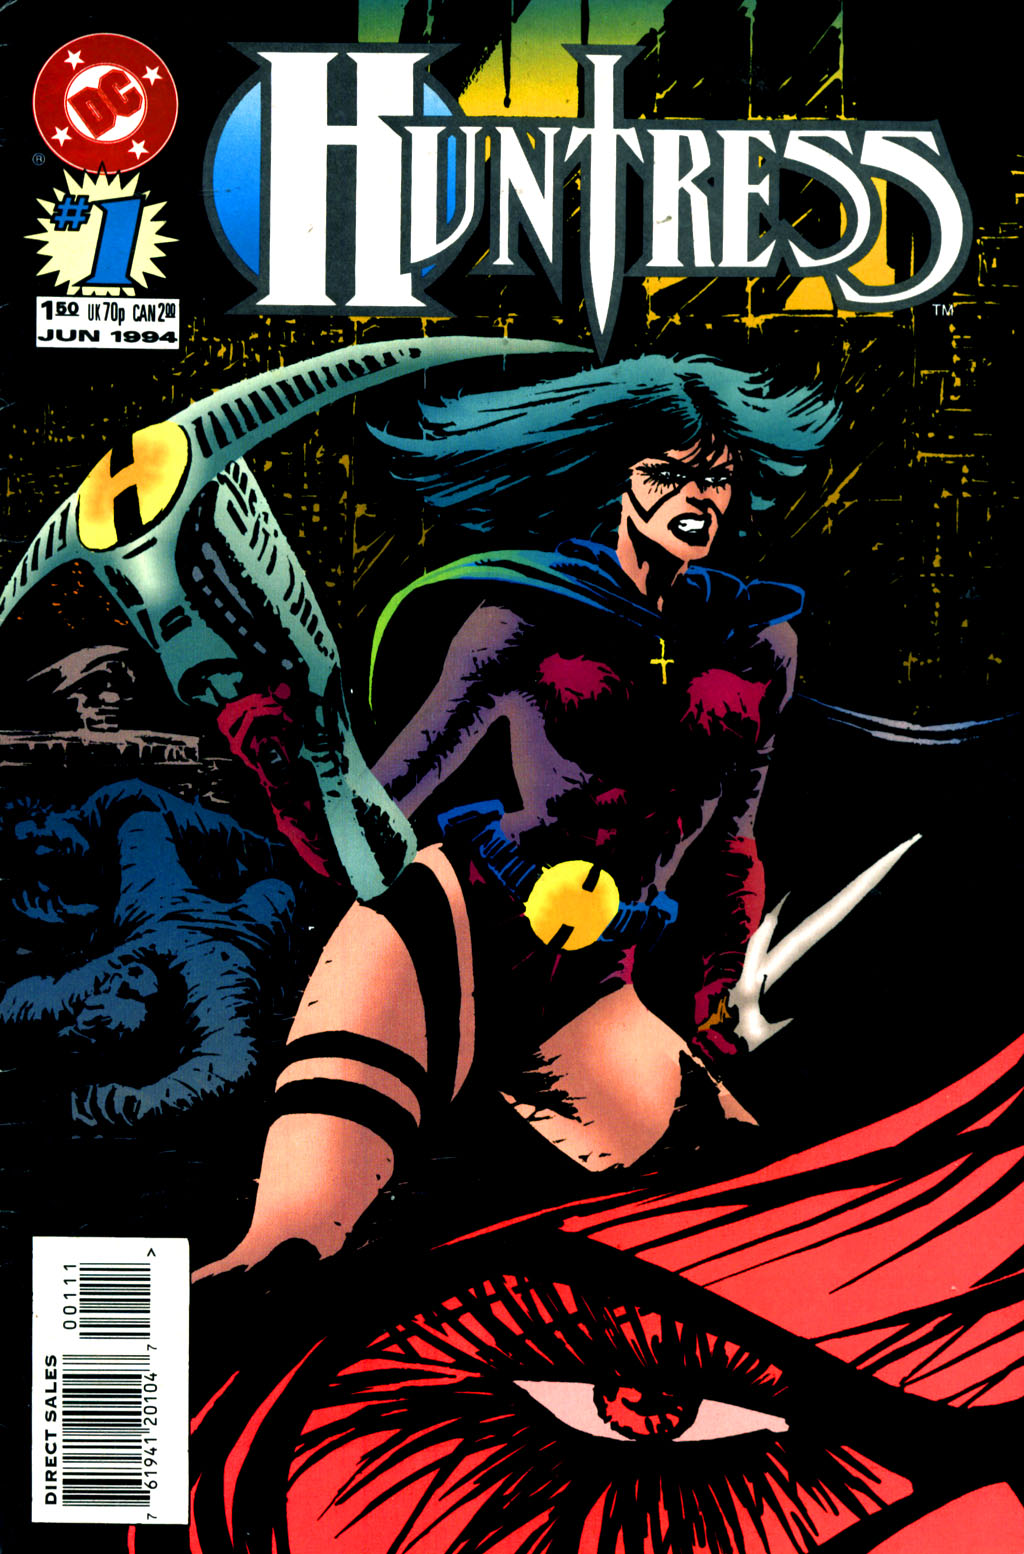 The Huntress (1994) #1, cover by Mike Netzer.